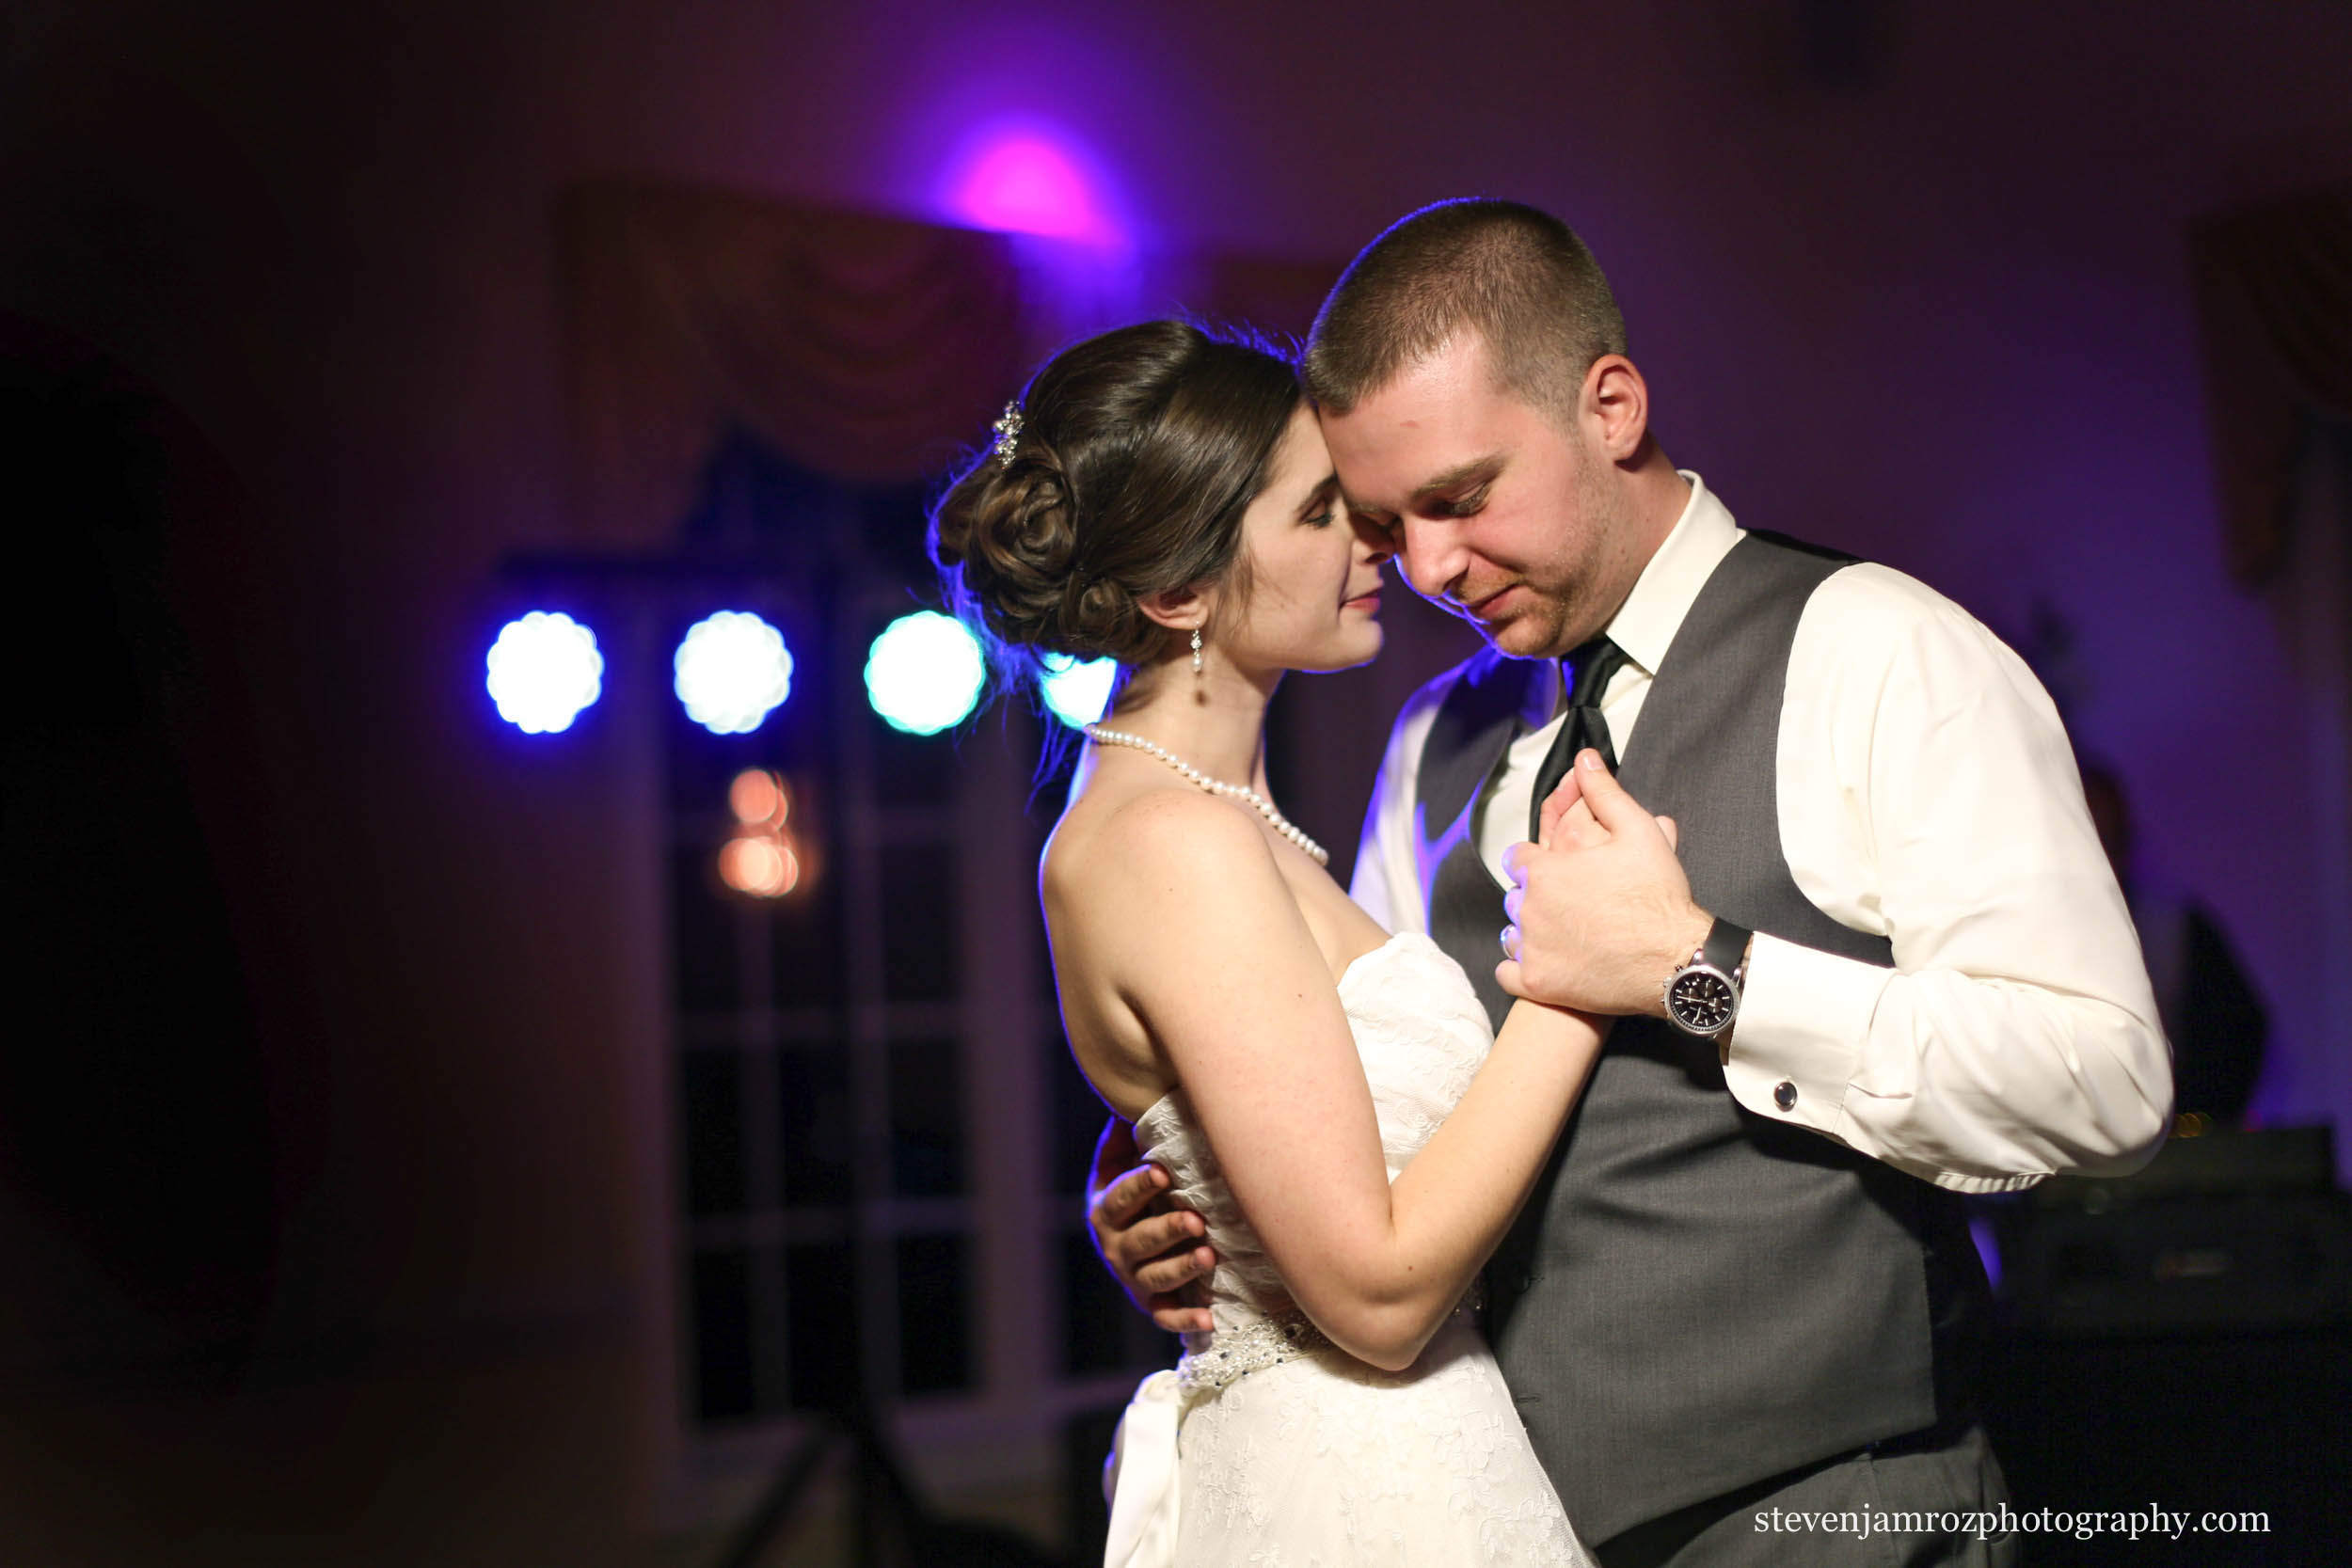 best-wedding-venue-hudson-manor-photographer-steven-jamroz-0664.jpg